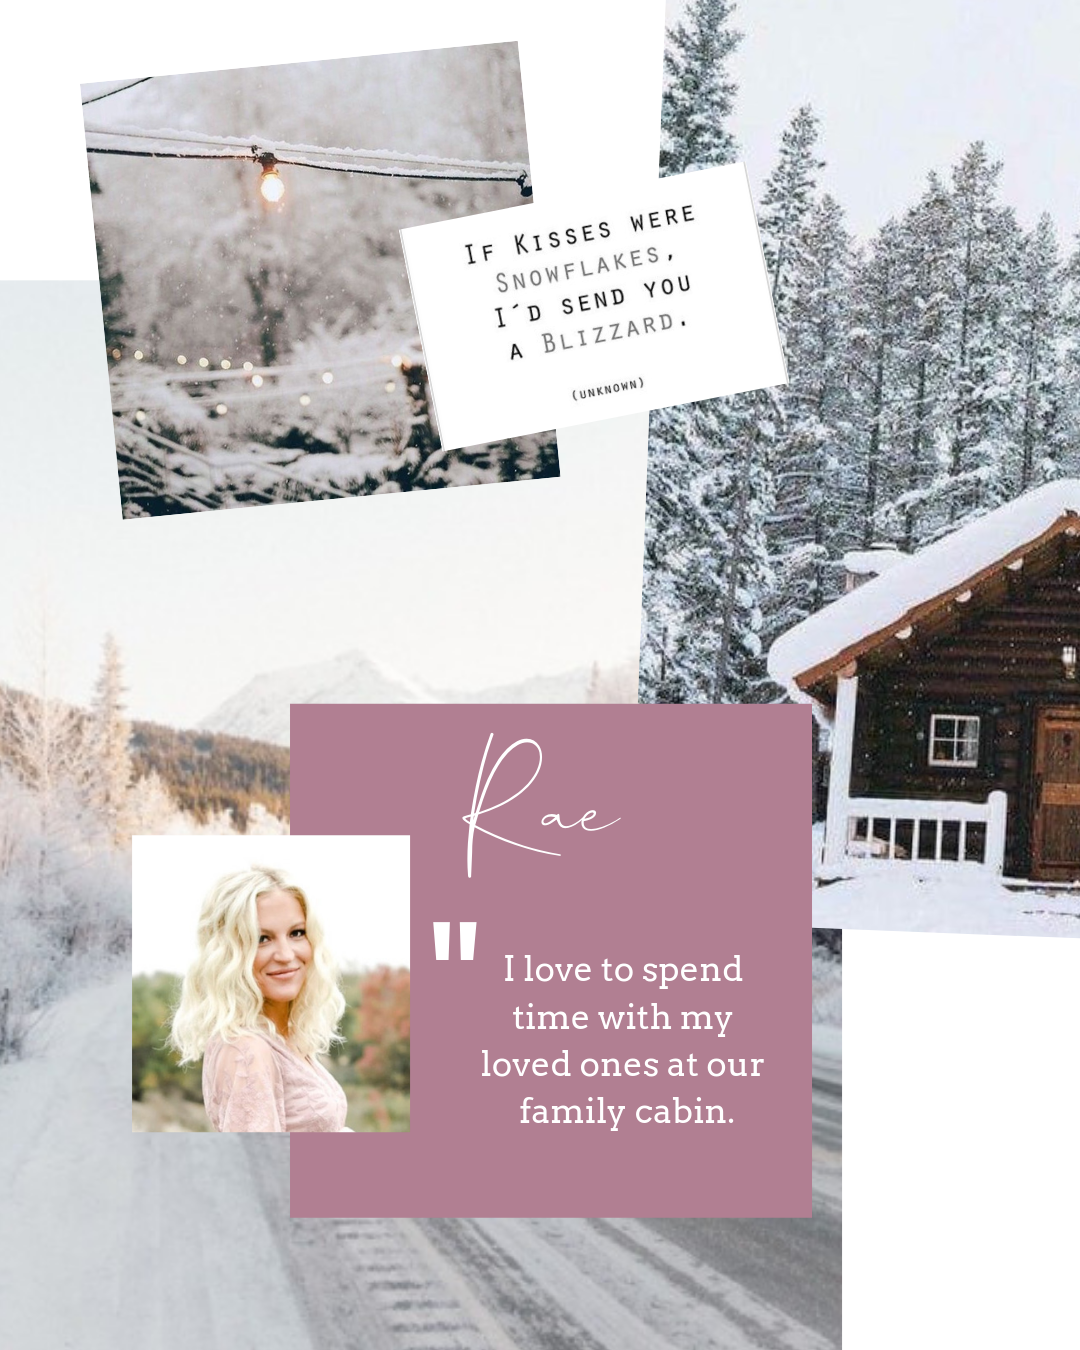 Rae , like the rest of us, is obsessed with the new hotspot  Heirloom  (butternut squash agnolotti, anyone?). On the weekends, she spent time visiting the snow her fam, and had a blast.